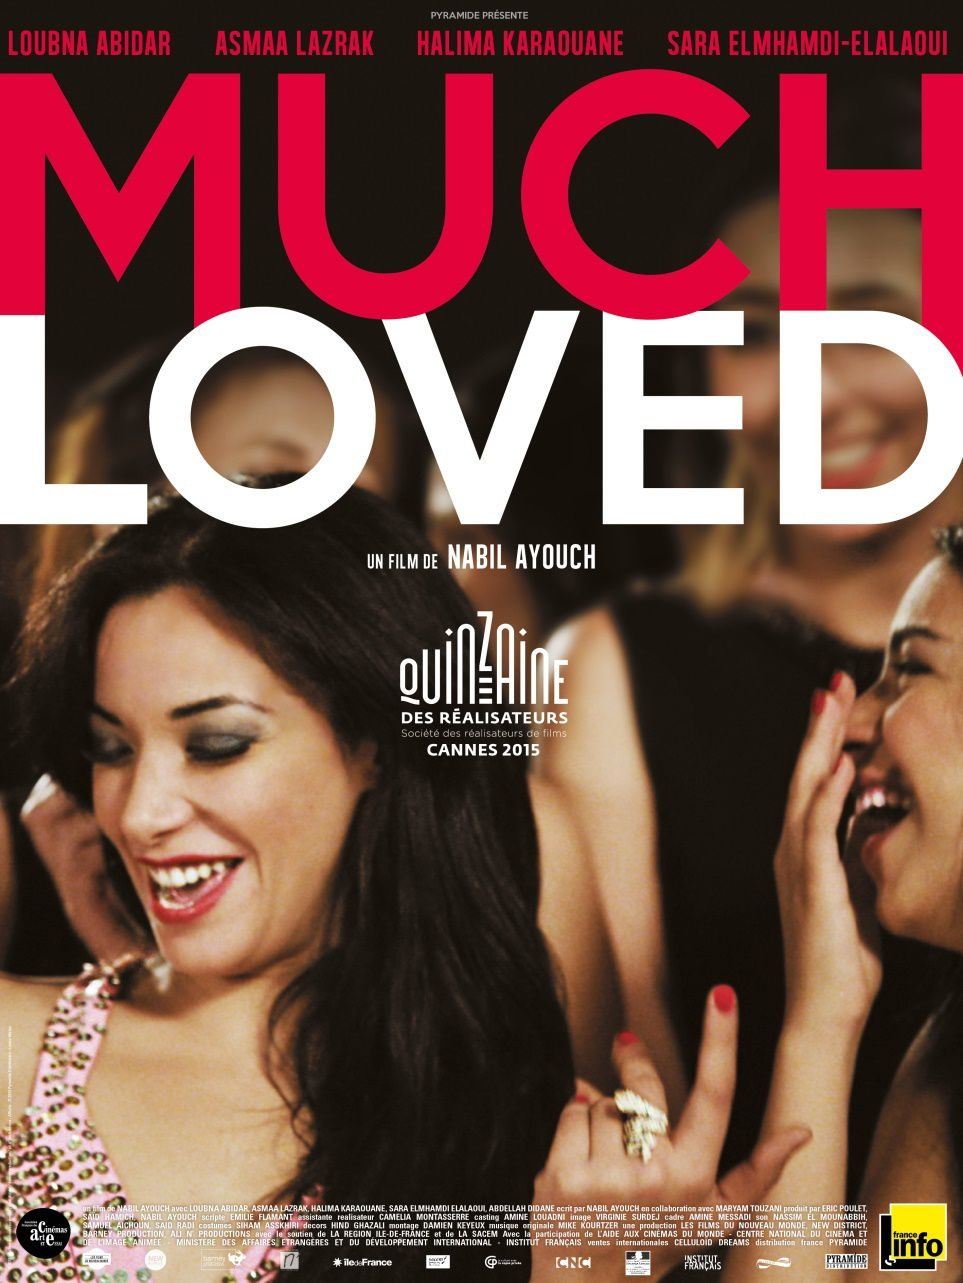 Much Loved, film de Nabil Ayouch | DR